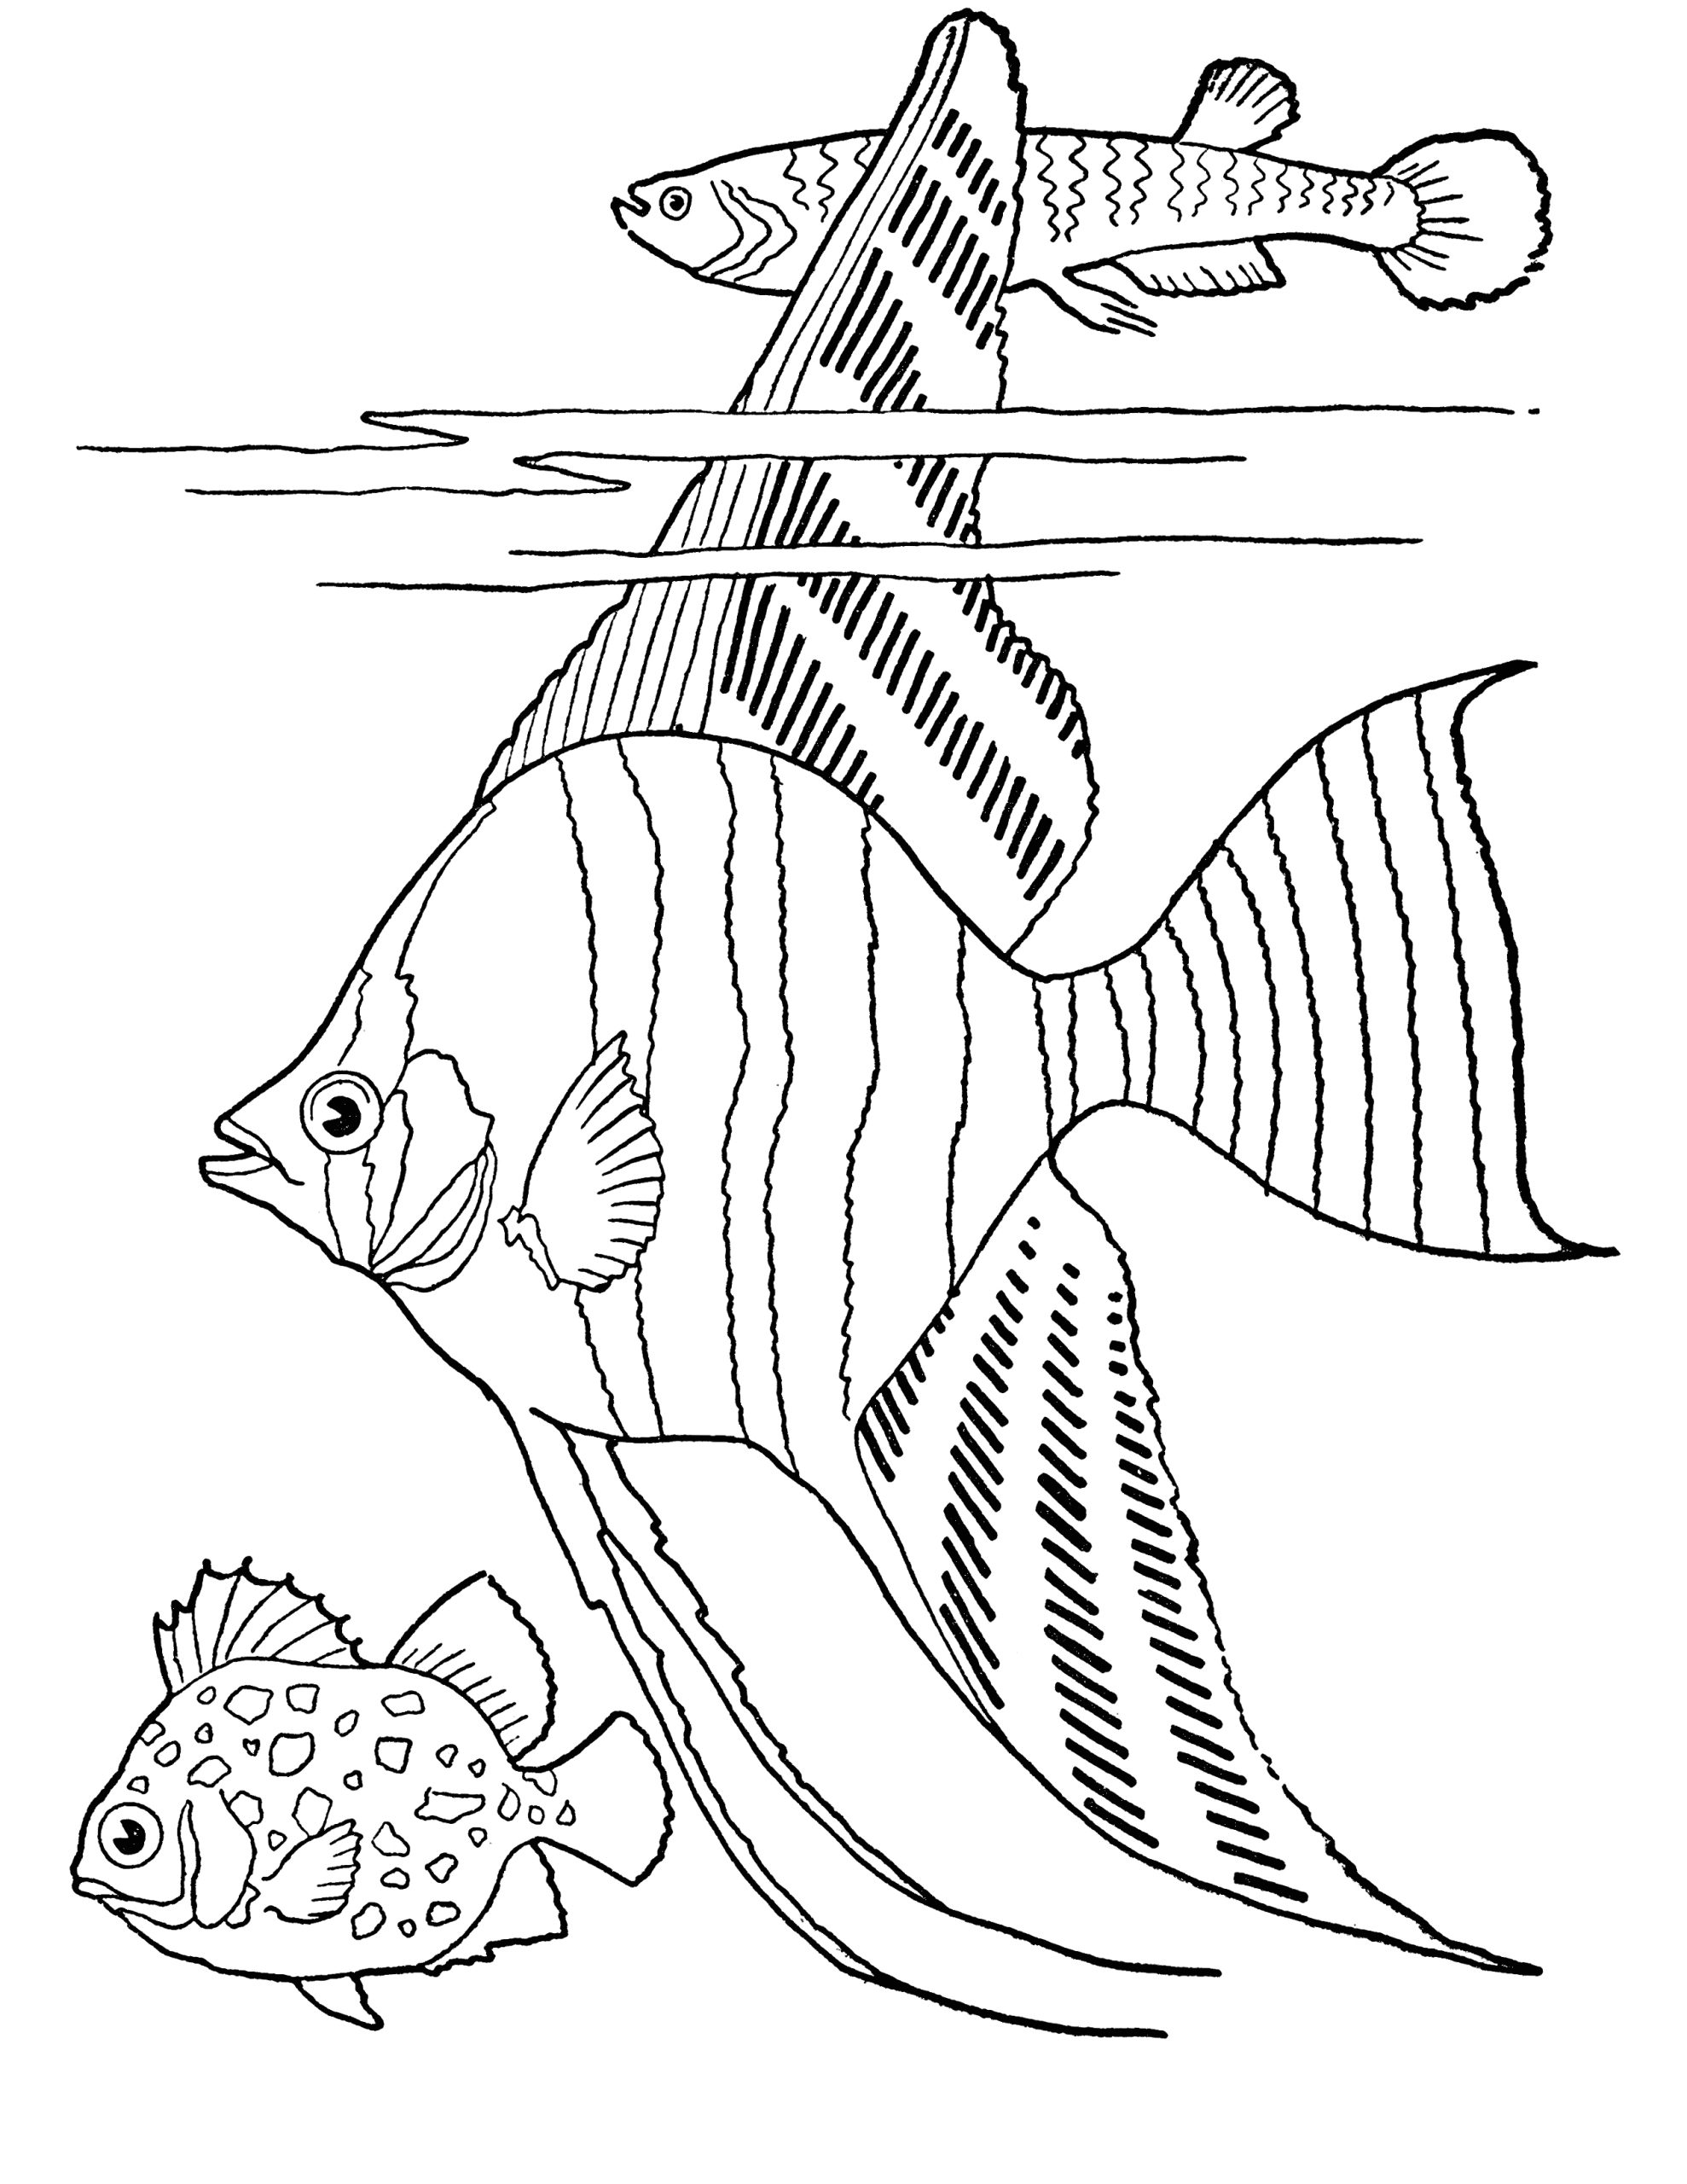 Tropical Fish Fish Coloring Pages for Adults Free Printable Adult Coloring Page Tropical Fish the